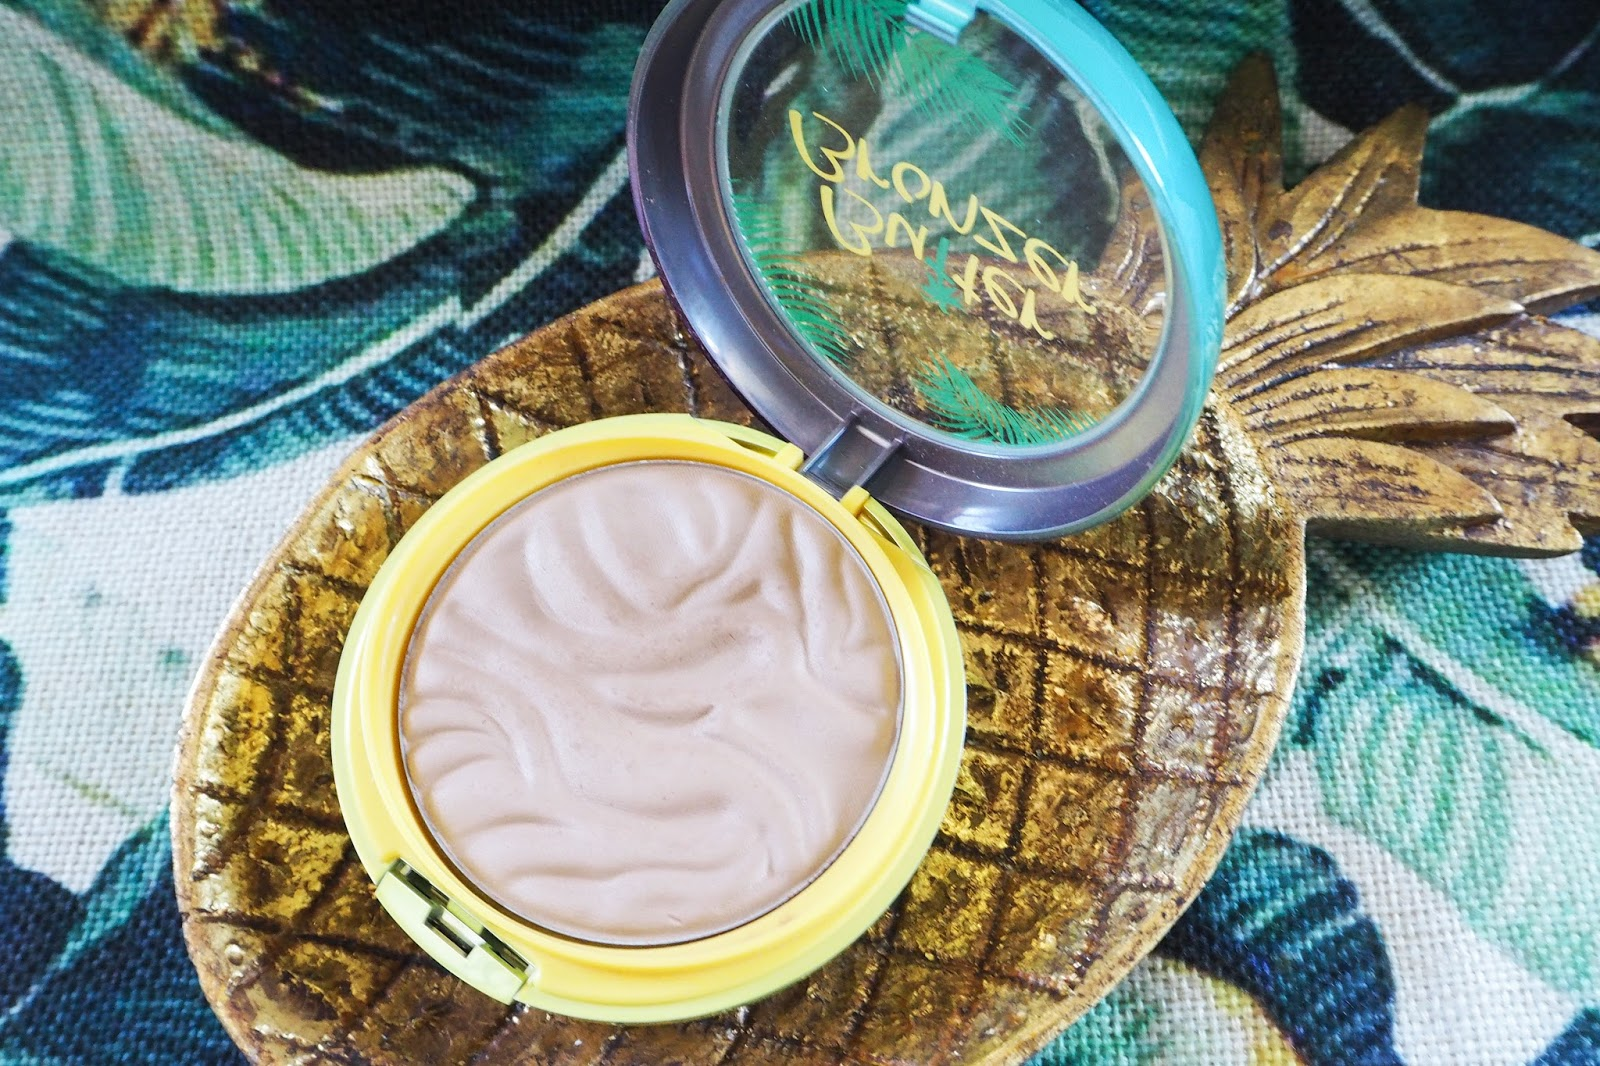 Physician's Formula Butter Bronzer Review